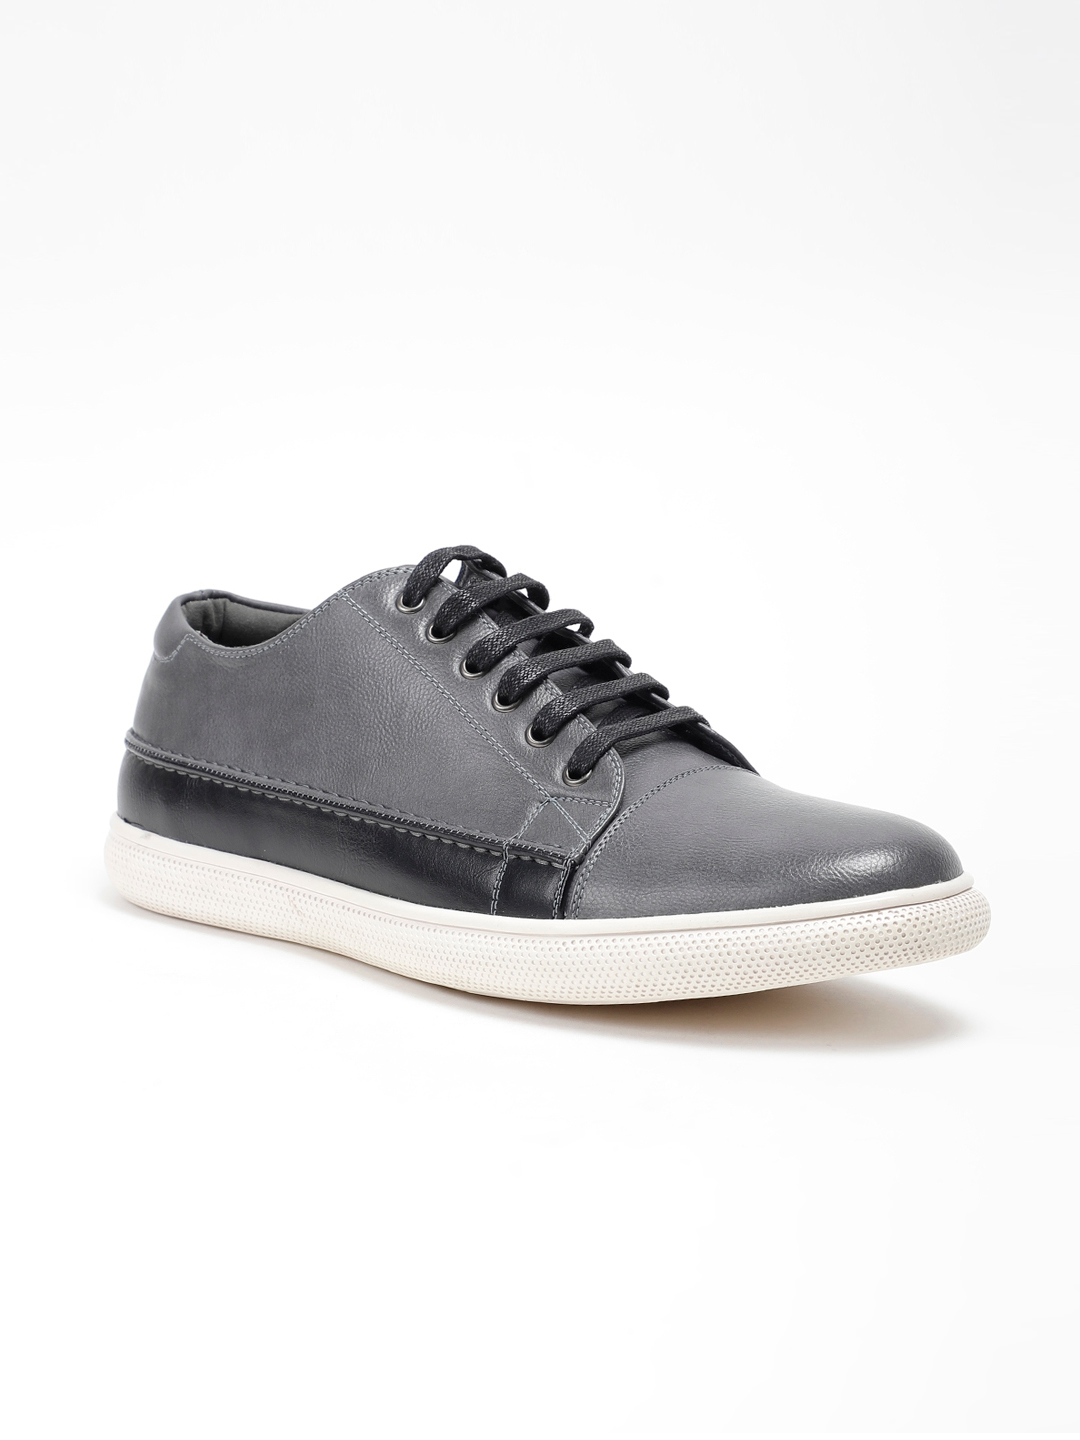 Grey Sneakers - Casual Shoes for Men